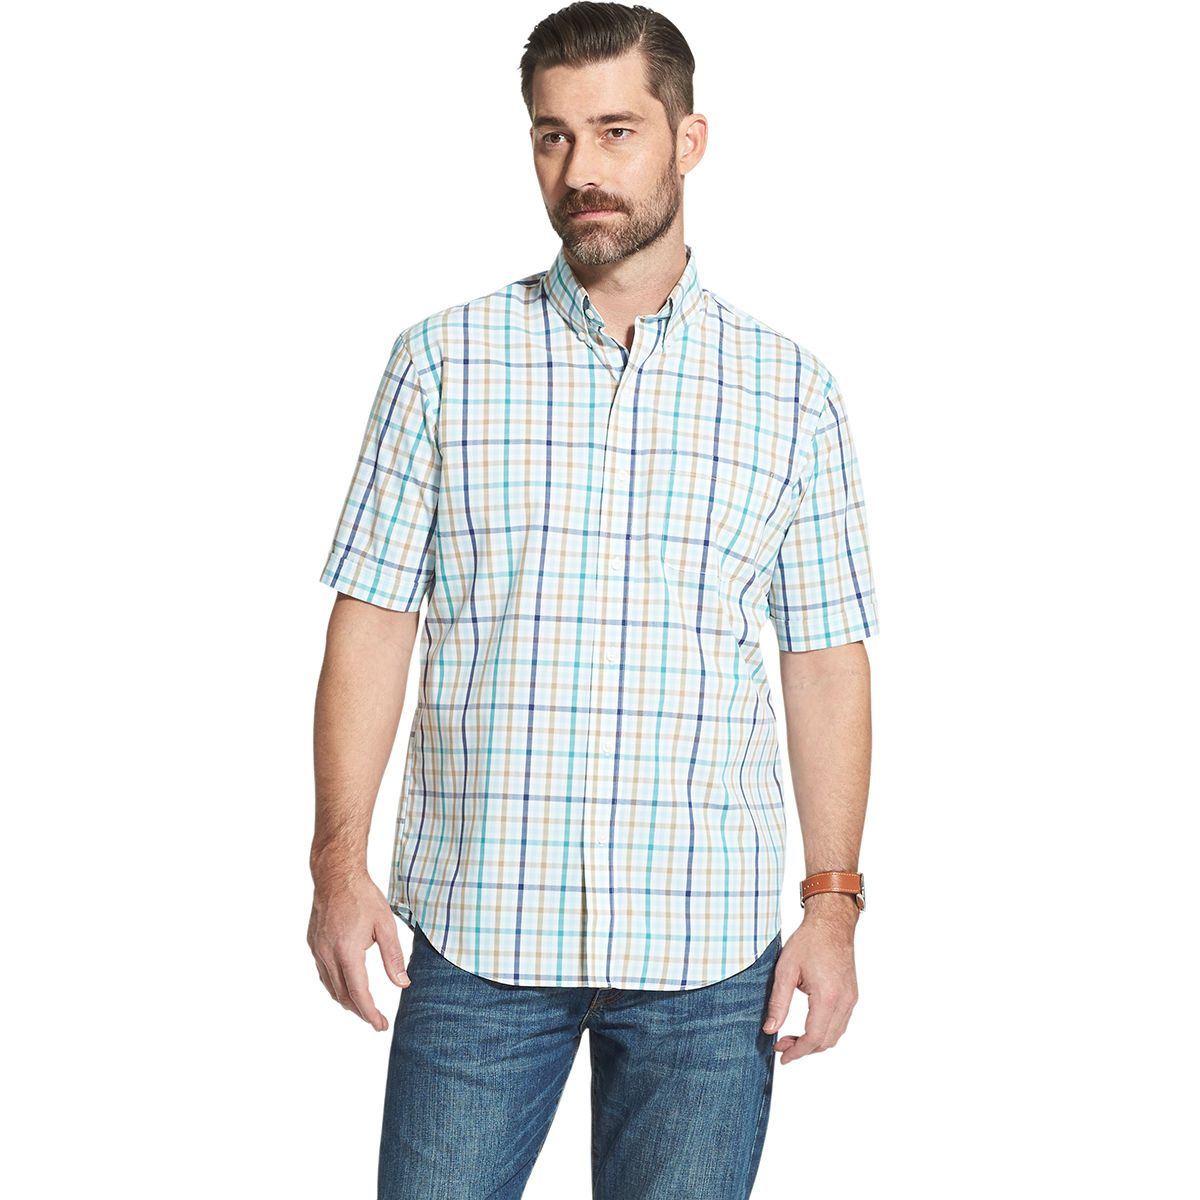 Arrow Men's Hamilton Short Sleeve Button Down Shirt - Blue, M